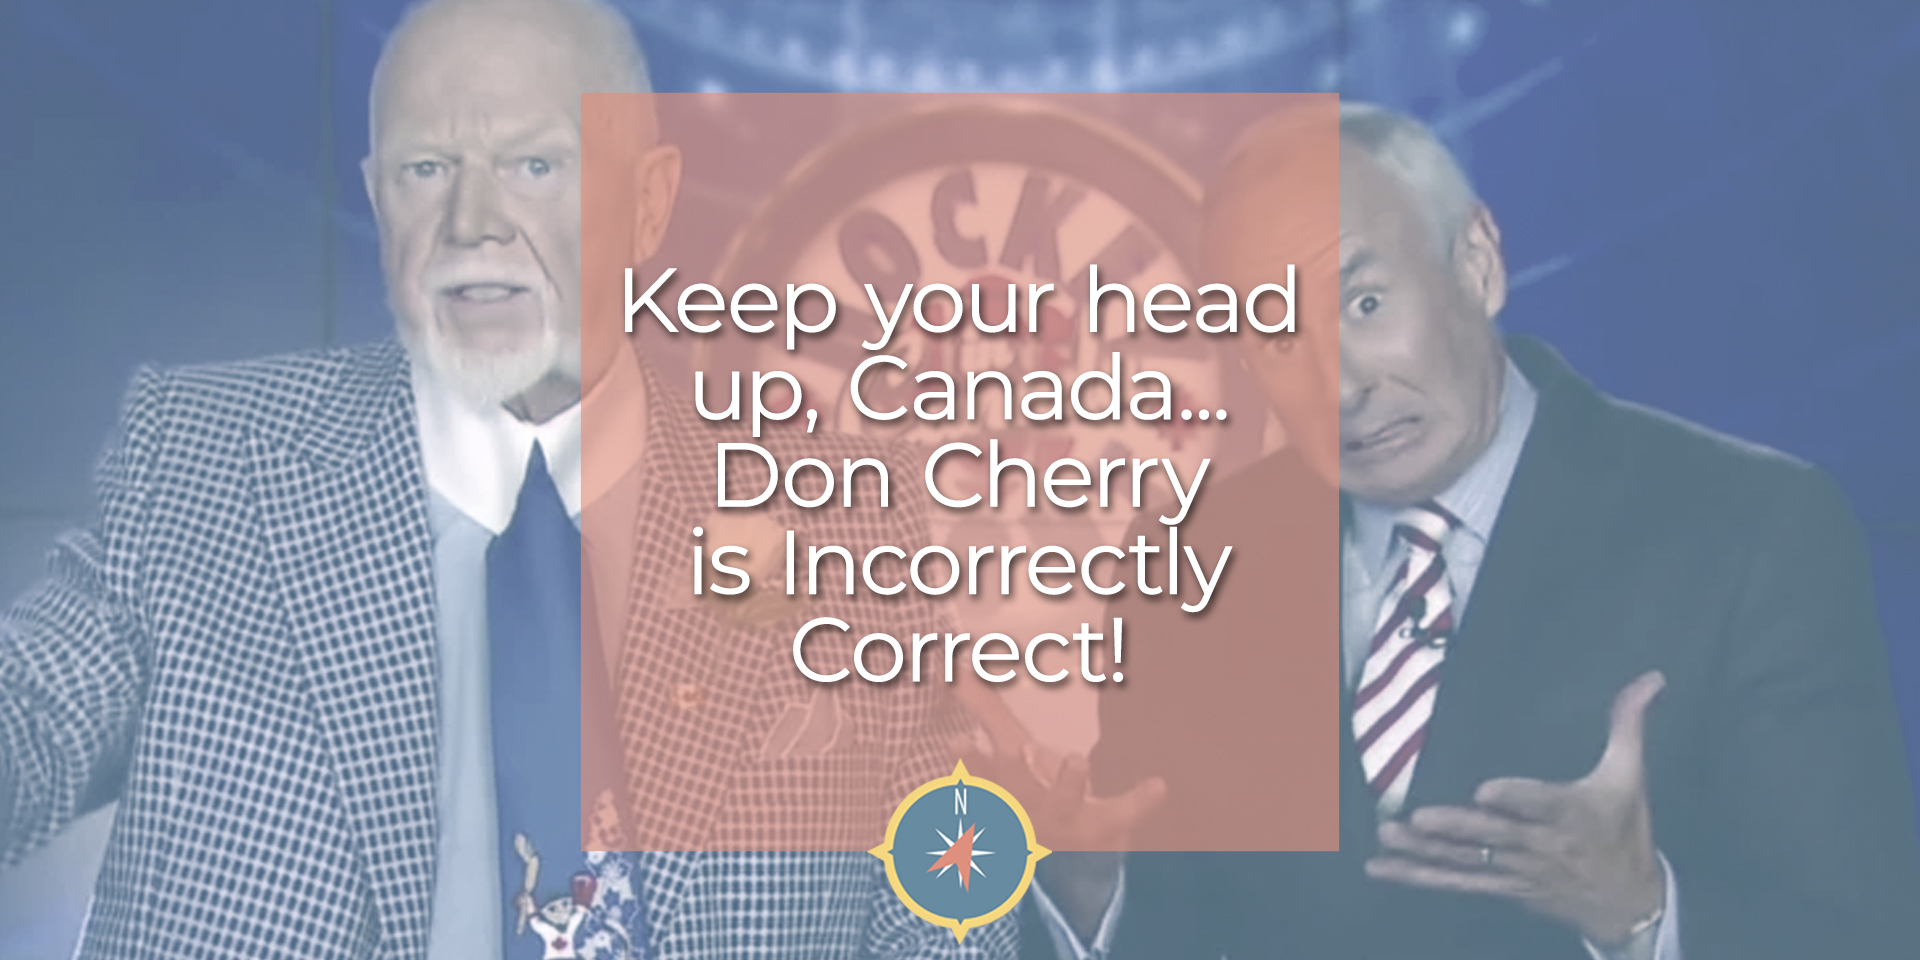 Keep your head up, Canada… Don Cherry is Incorrectly Correct